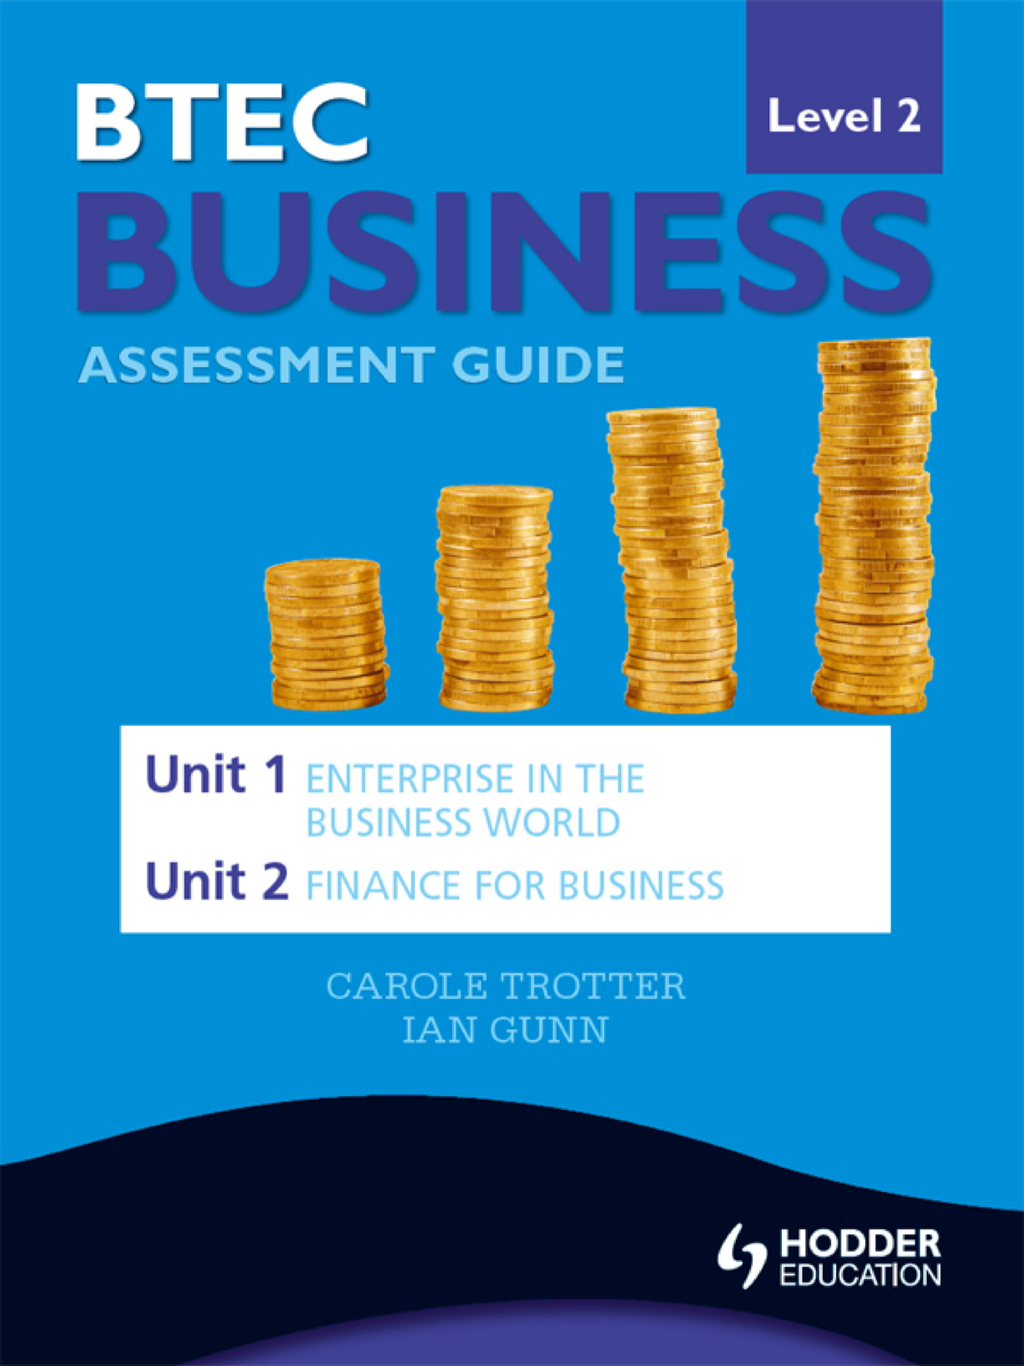 BTEC Business Level 2 Assessment Guide: Unit 1 Enterprise in the Business World & Unit 2 Finance for Business